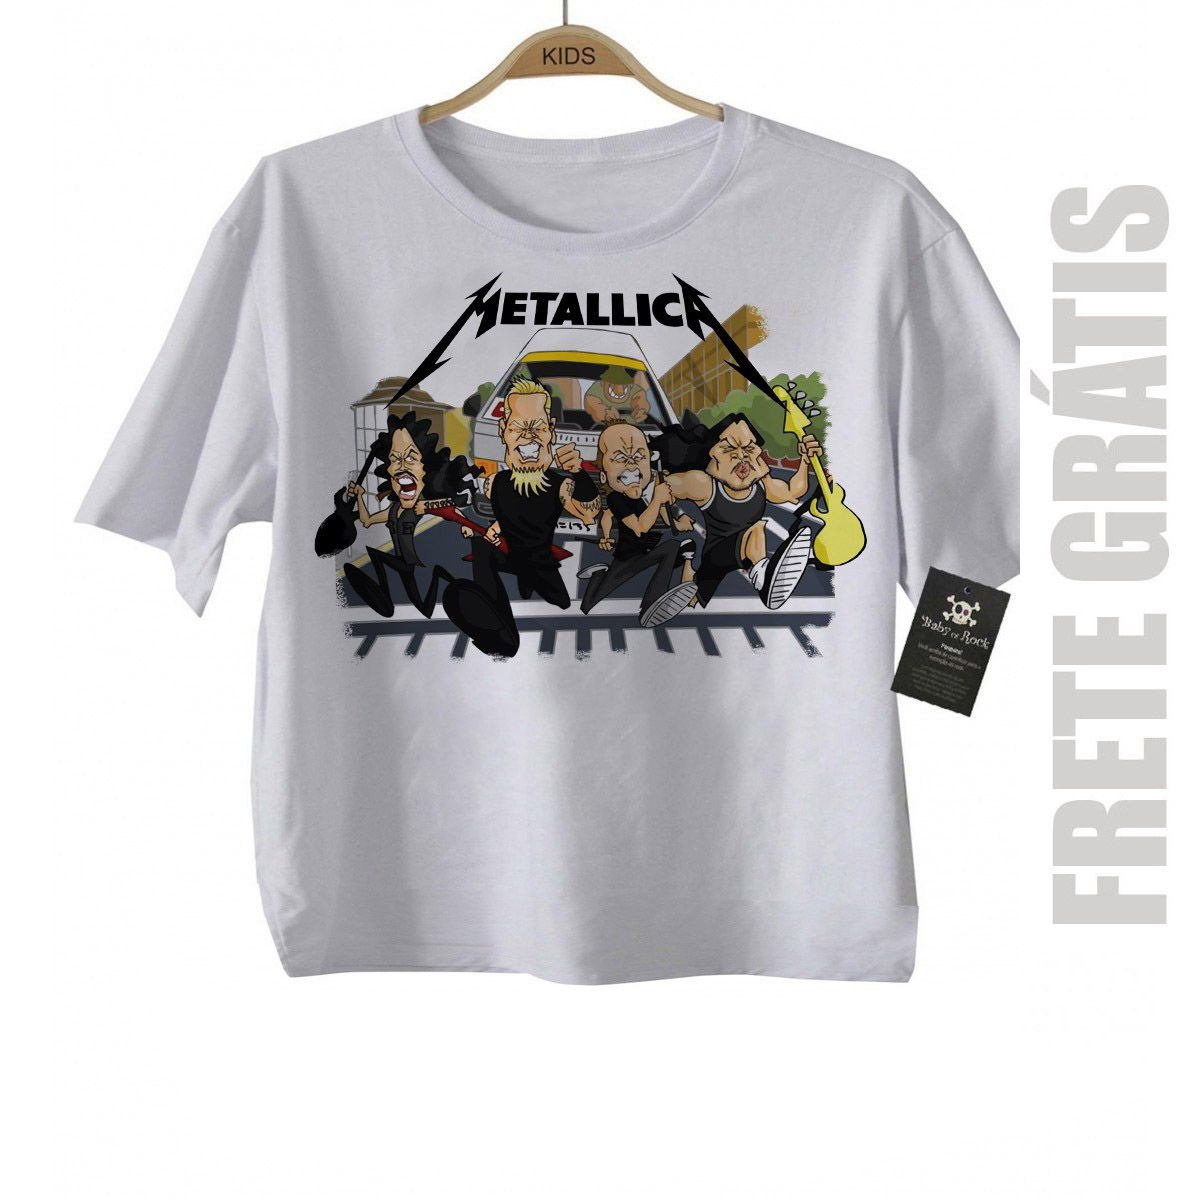 Camiseta Infantil Metallica Run - White  - Baby Monster S/A